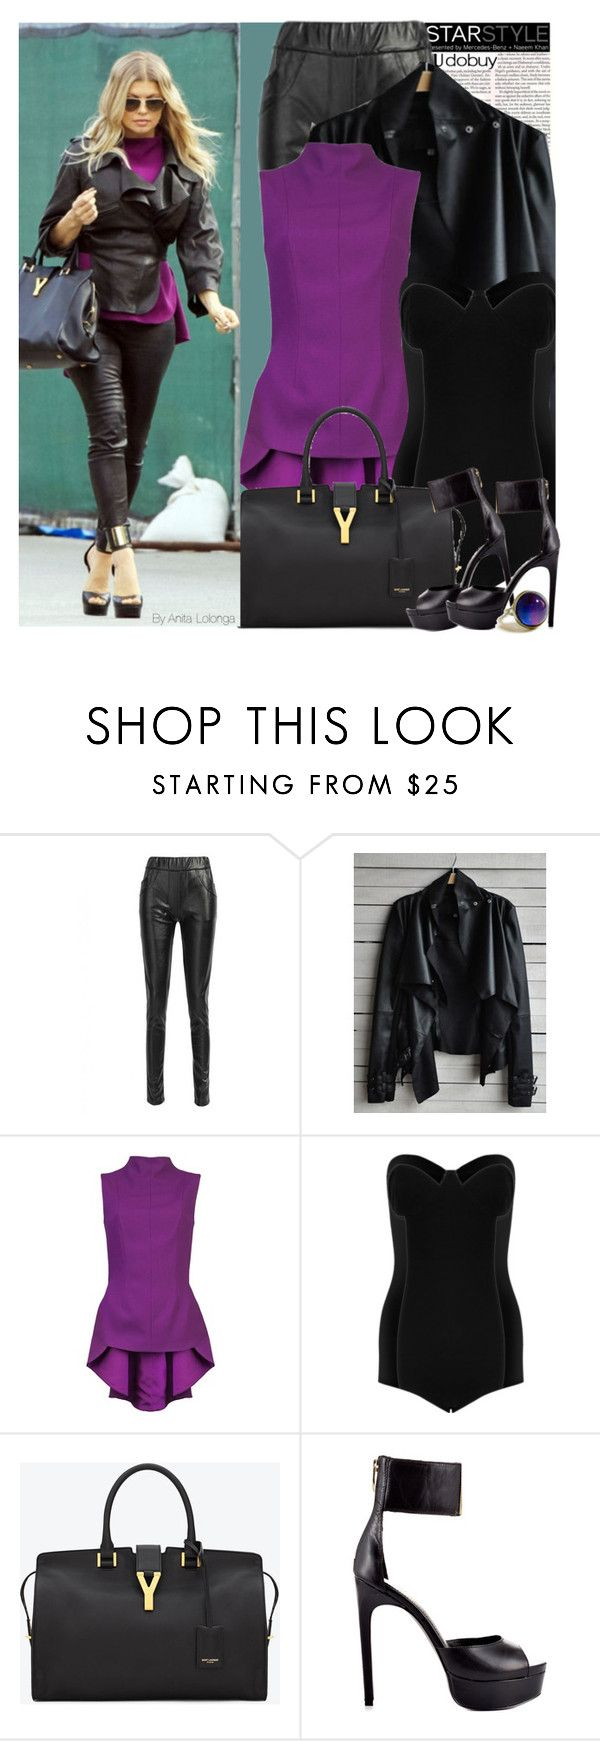 """Celebrity Street Style:Fergie"" by anitadanako ❤ liked on Polyvore featuring The Row, Motel, Yves Saint Laurent, Fergie and Retrò"